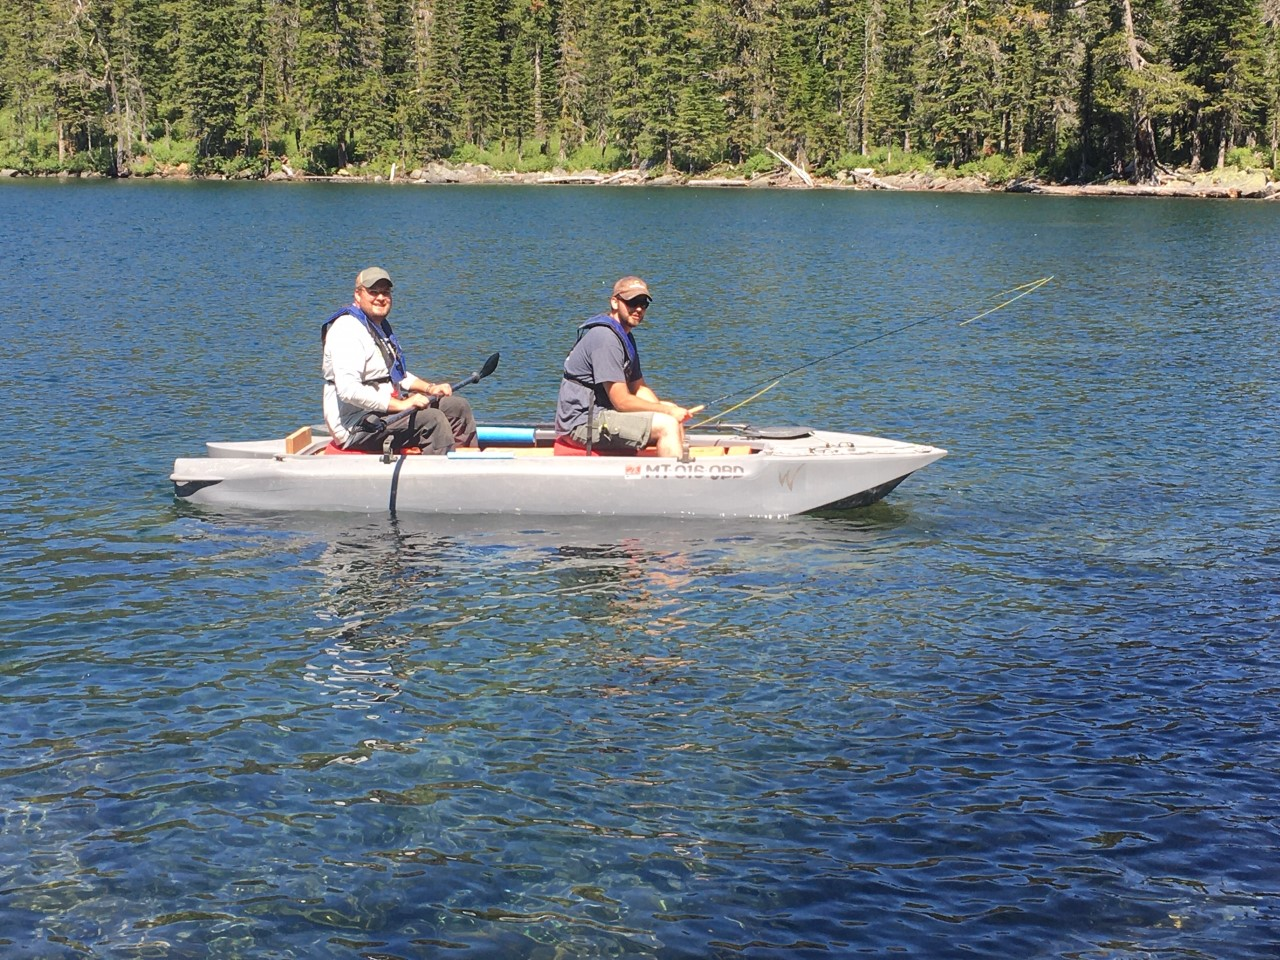 Tow anglers fishing from a Wavewalk S4 kayak in lake Hawkin, Montana